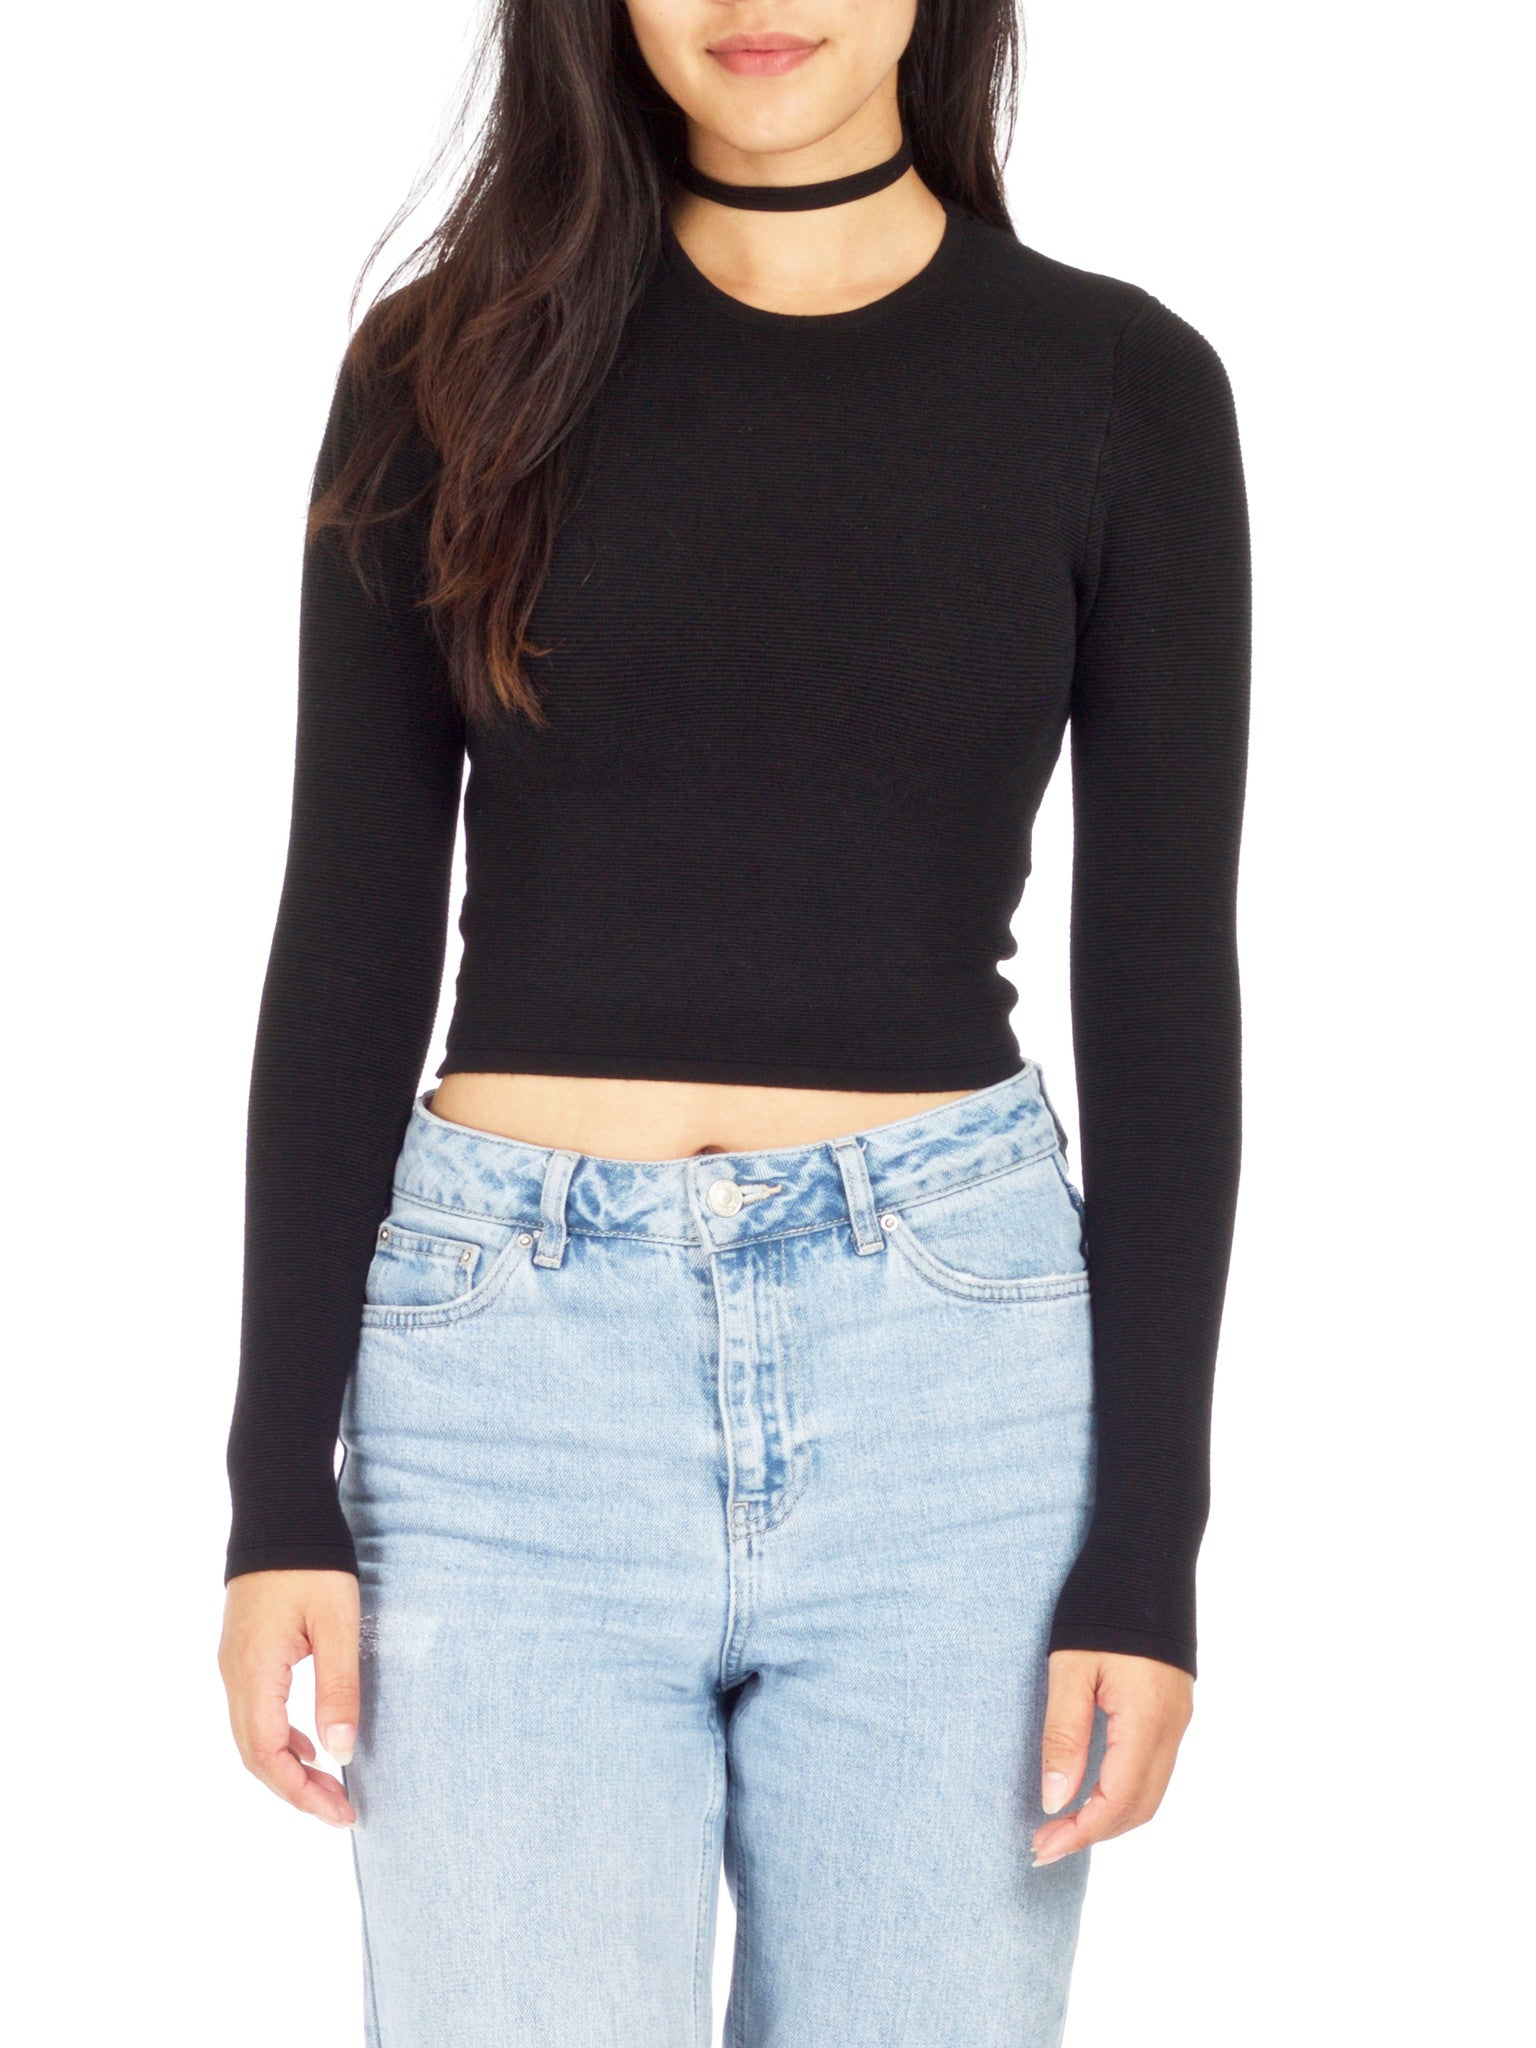 Drew Knit Ribbed Crop top - PRADEGAL